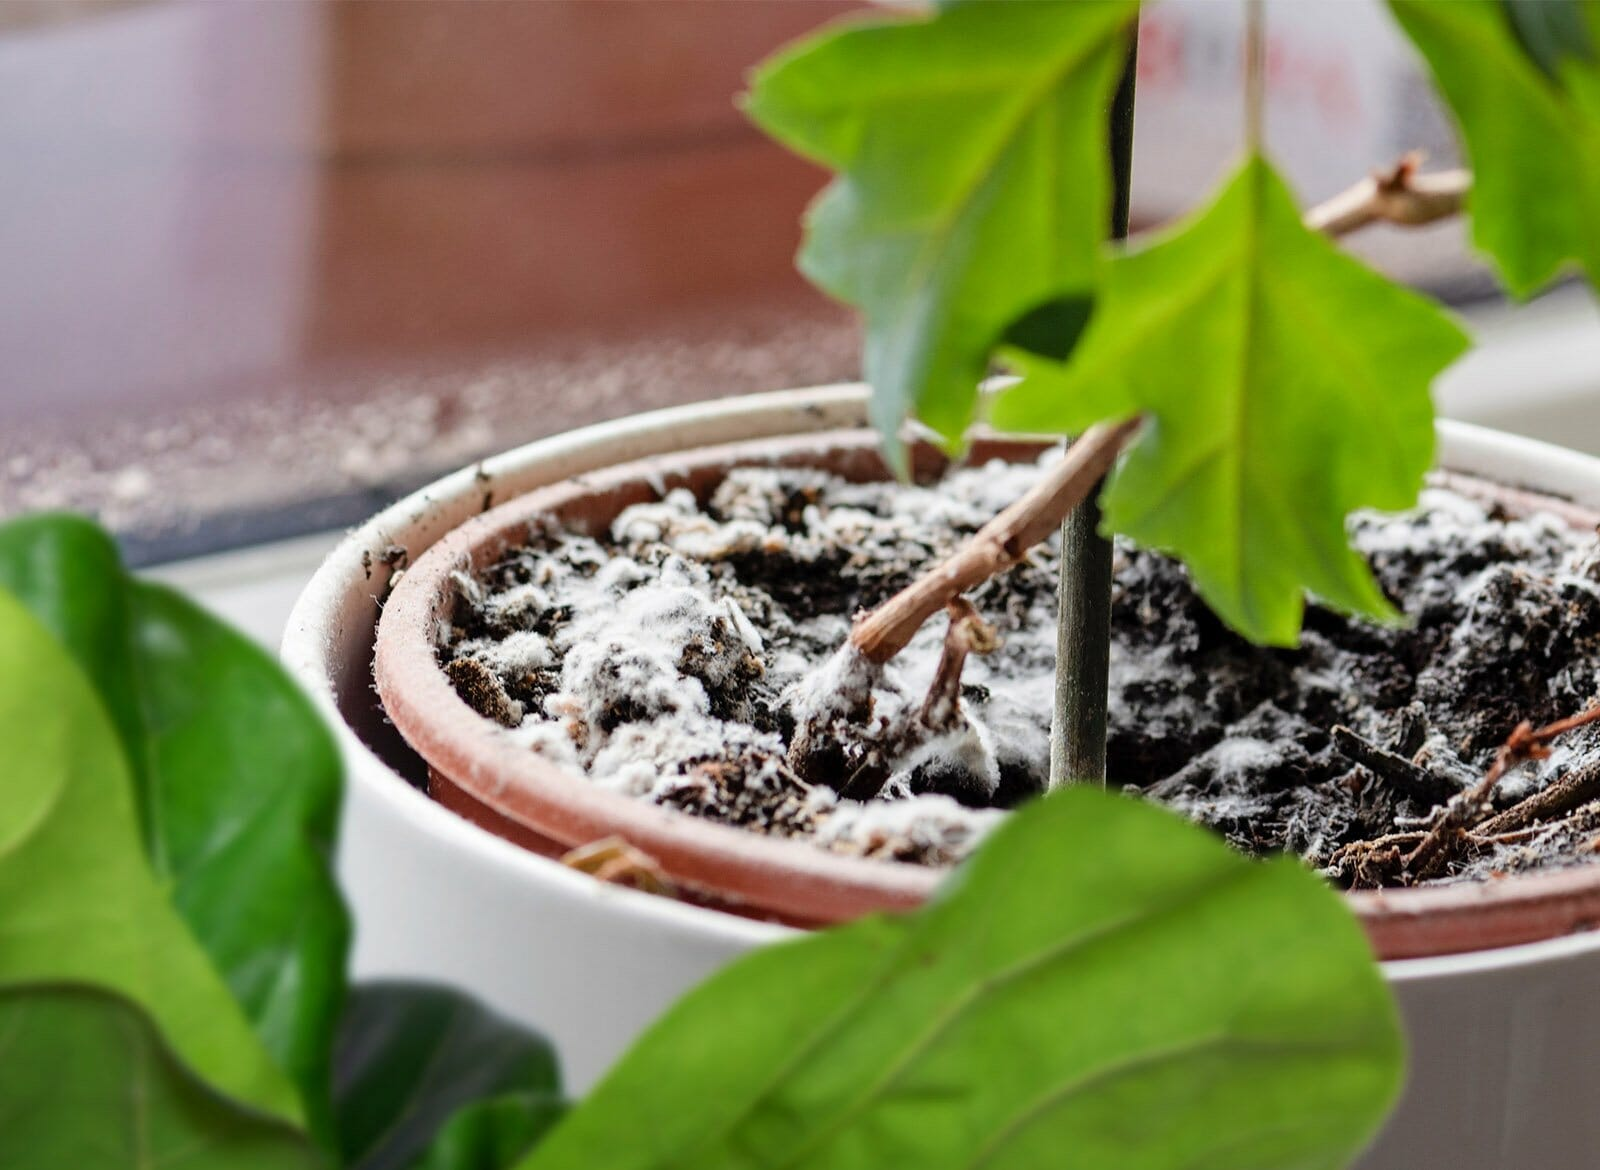 how to get rid of mold on top of plant soil